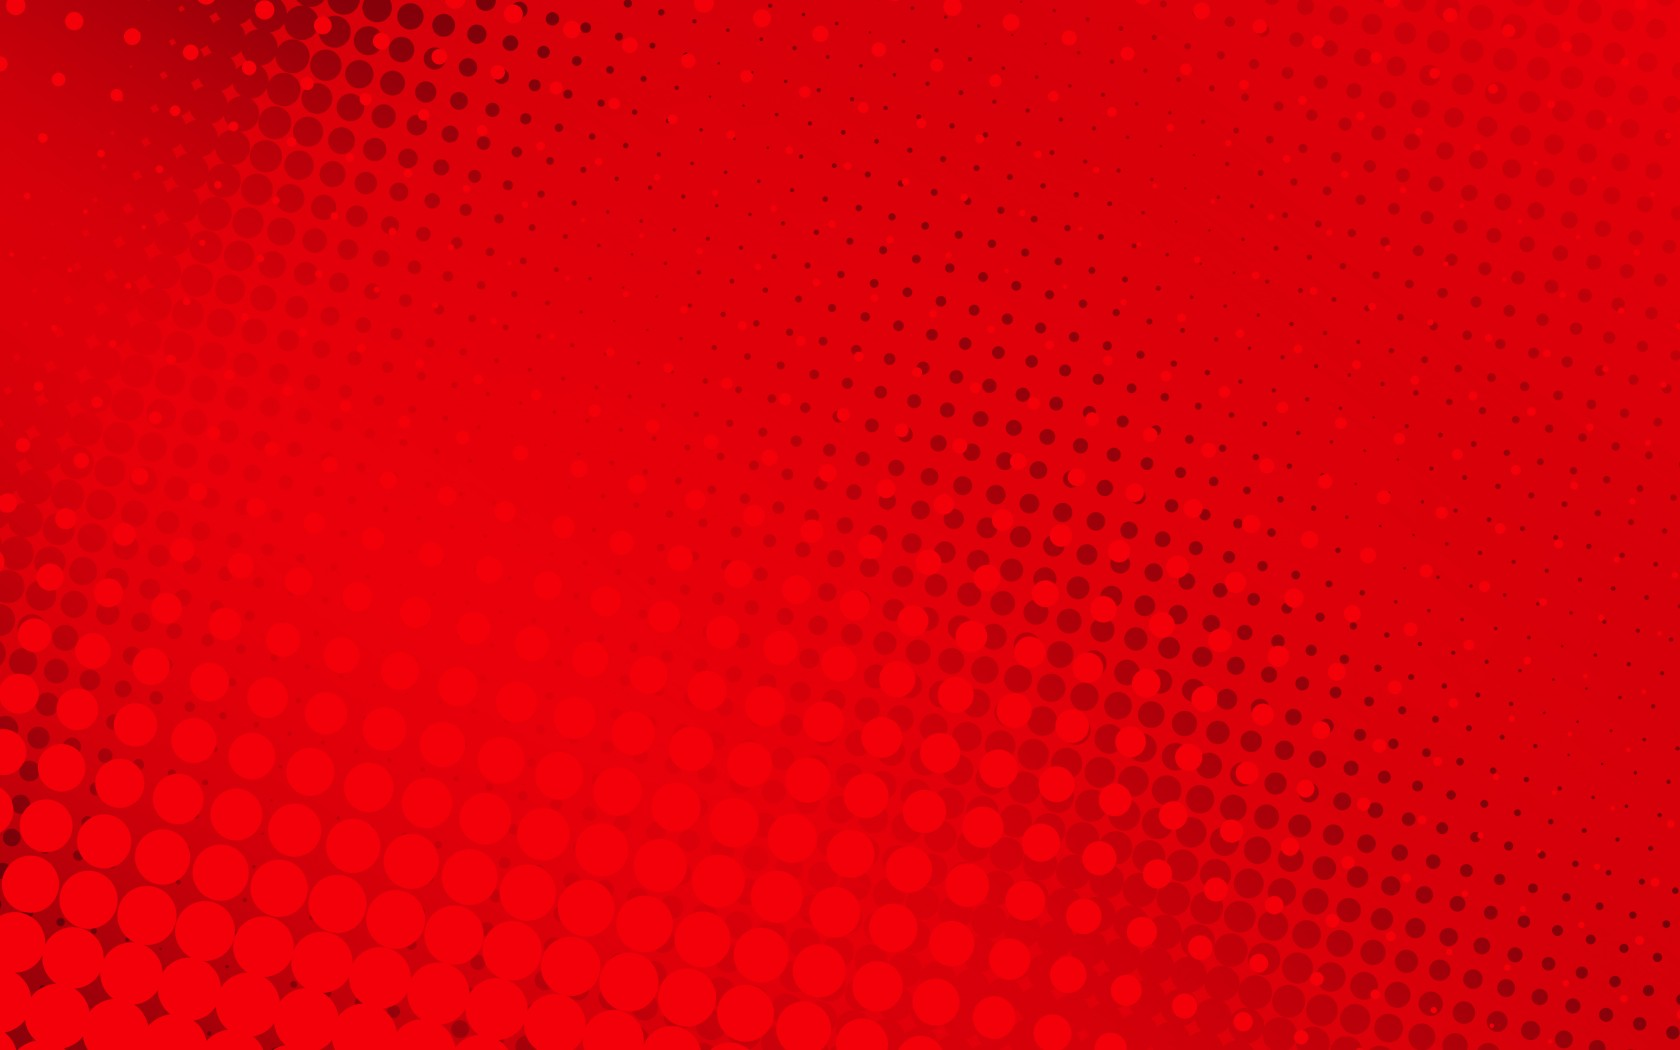 Red Halftone Background Hd Wallpapers Hd Backgrounds